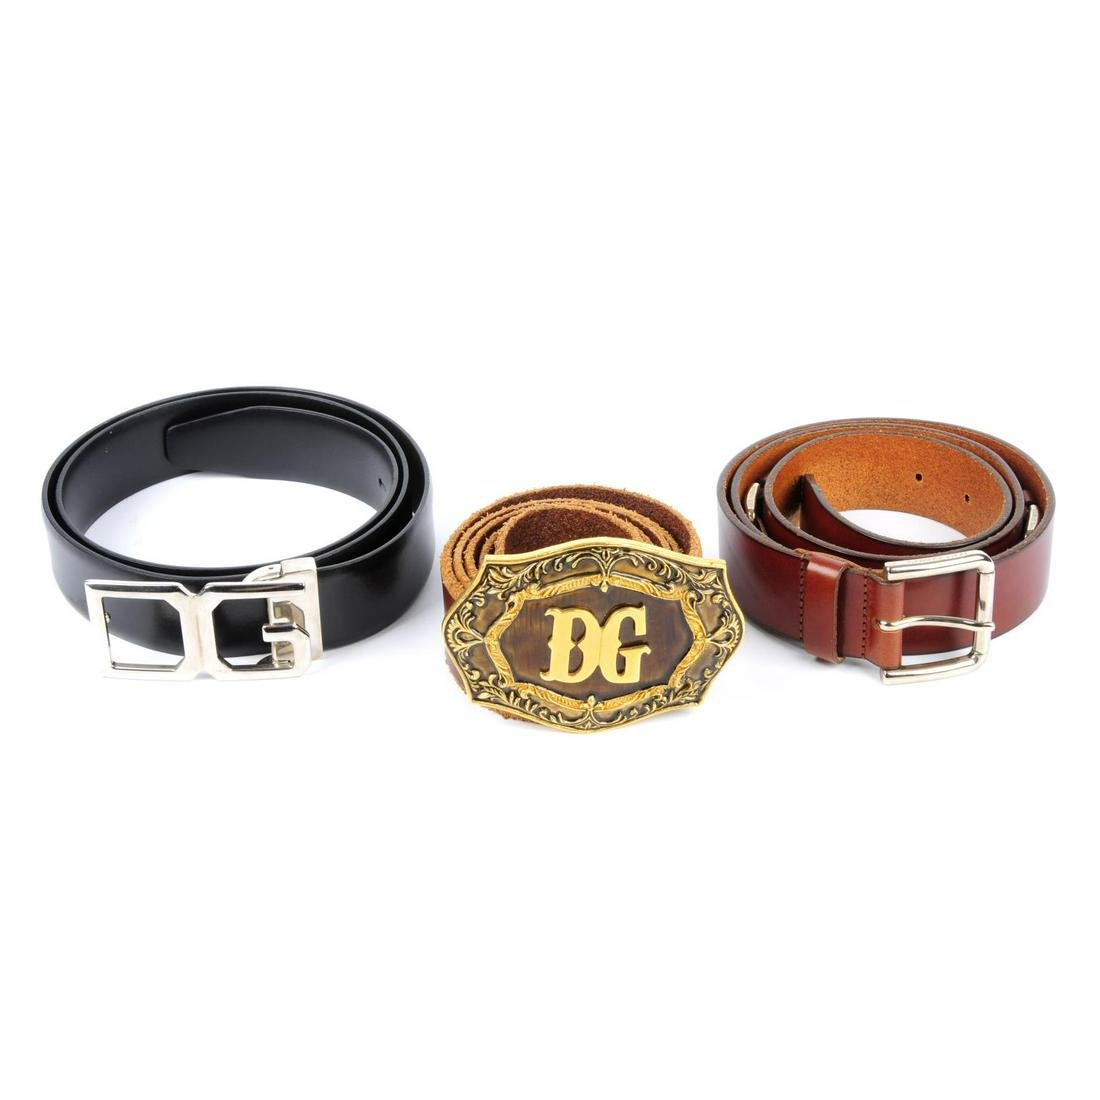 DOLCE & GABBANA - three belts. To include a black